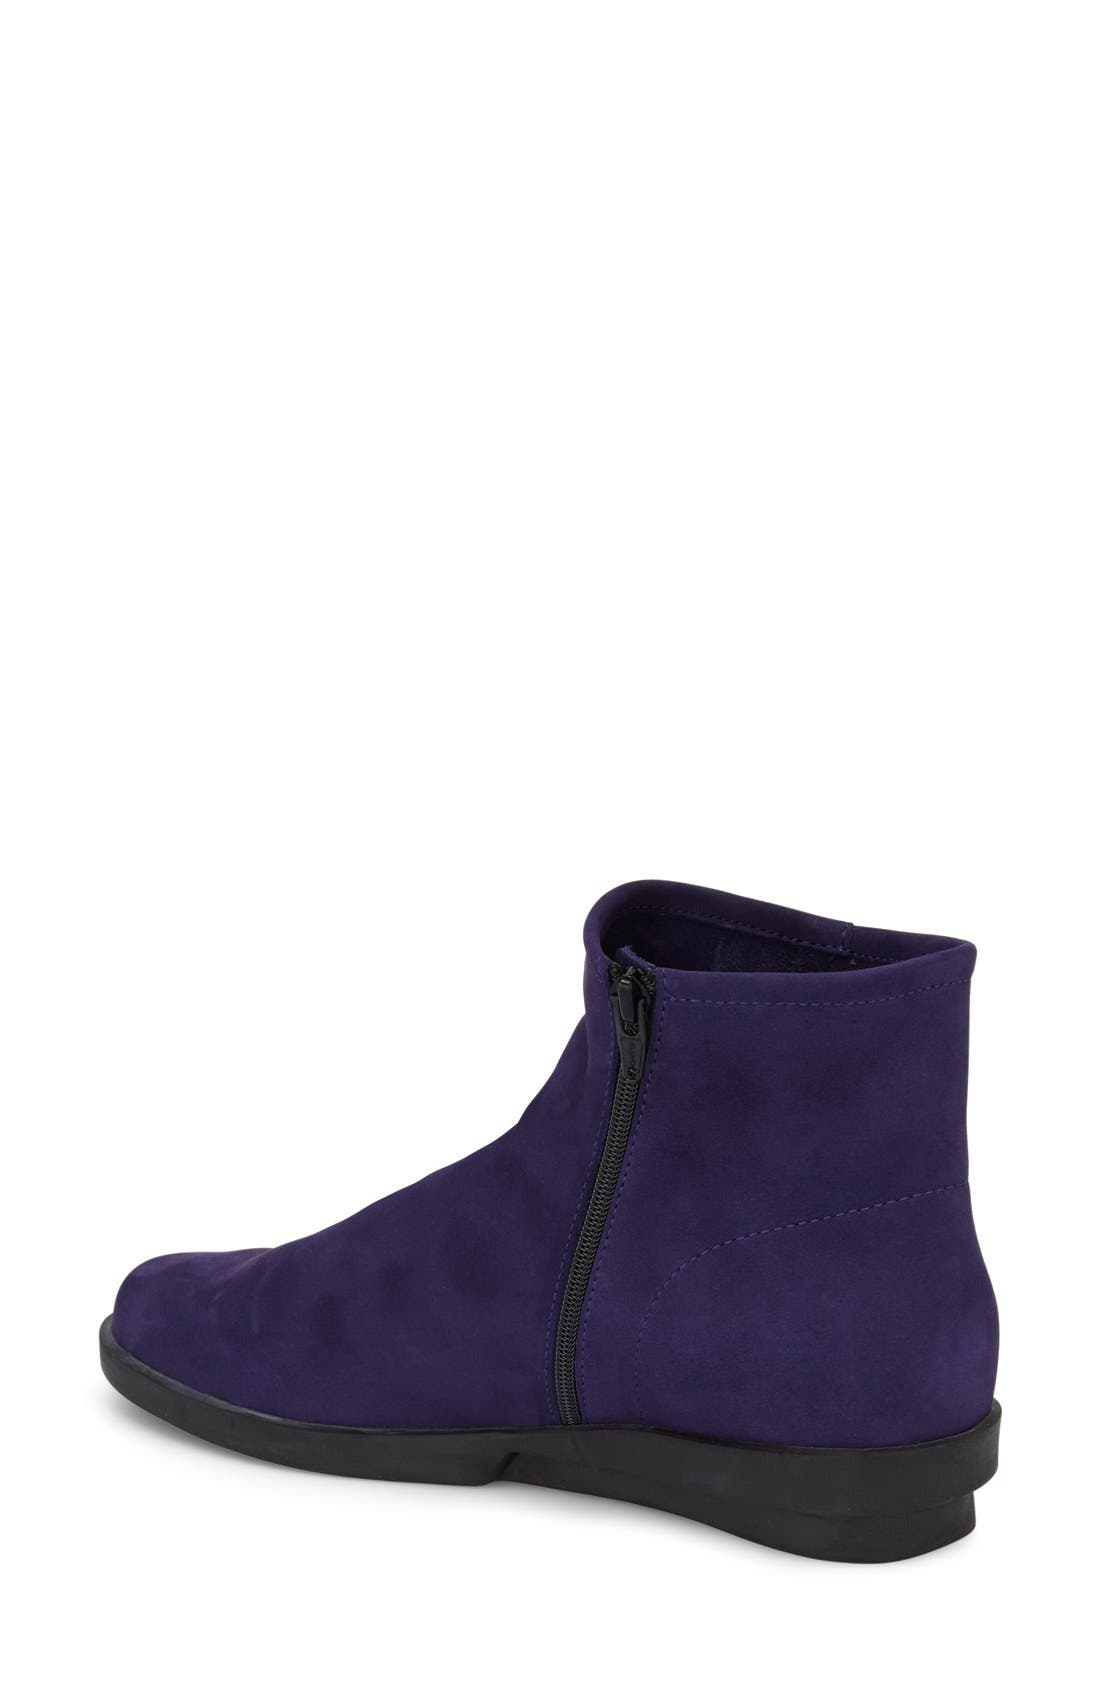 Alternate Image 2  - Arche 'Detyam' Wedge Zip Bootie (Women)